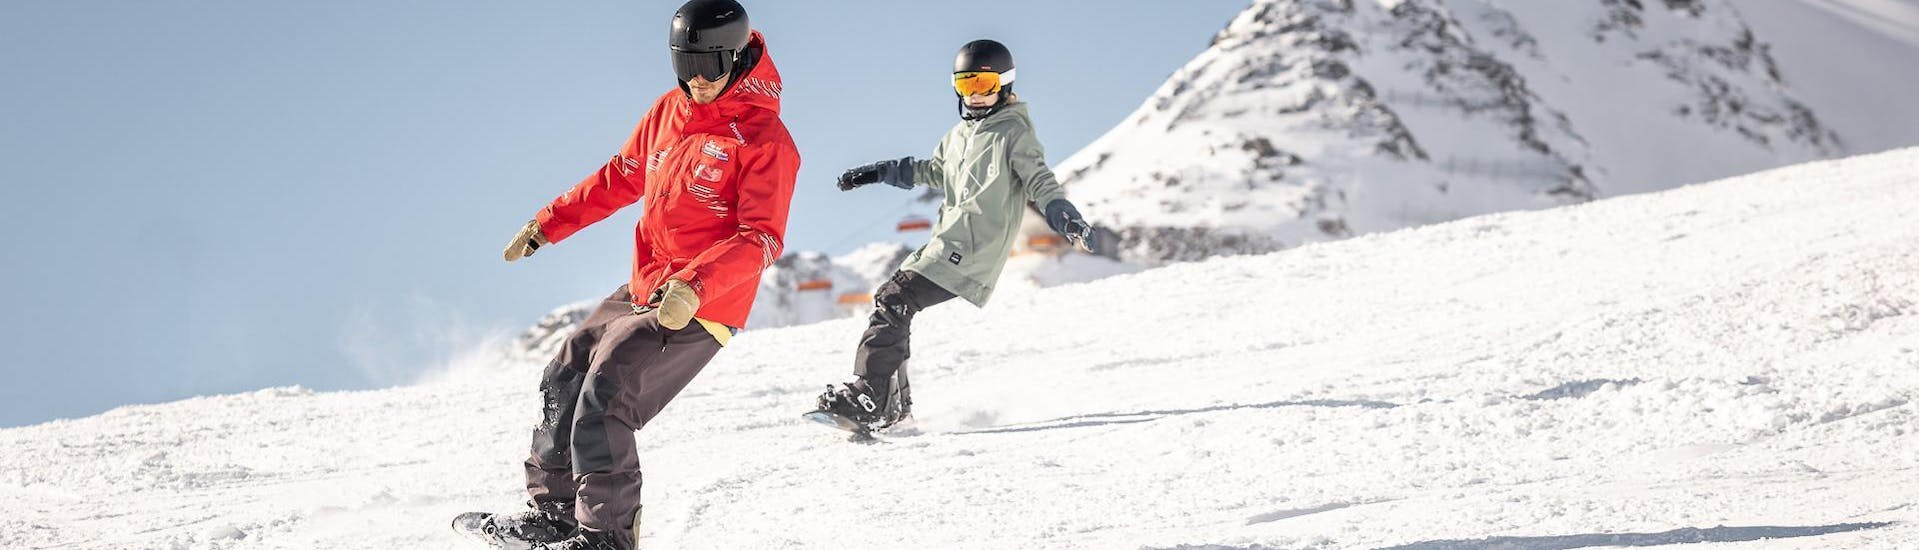 A snowboarder is practicing his front and backside turns during his Private Snowboarding Lessons for Adults - All Levels with the ski school Ski- und Snowboardschule Vacancia.